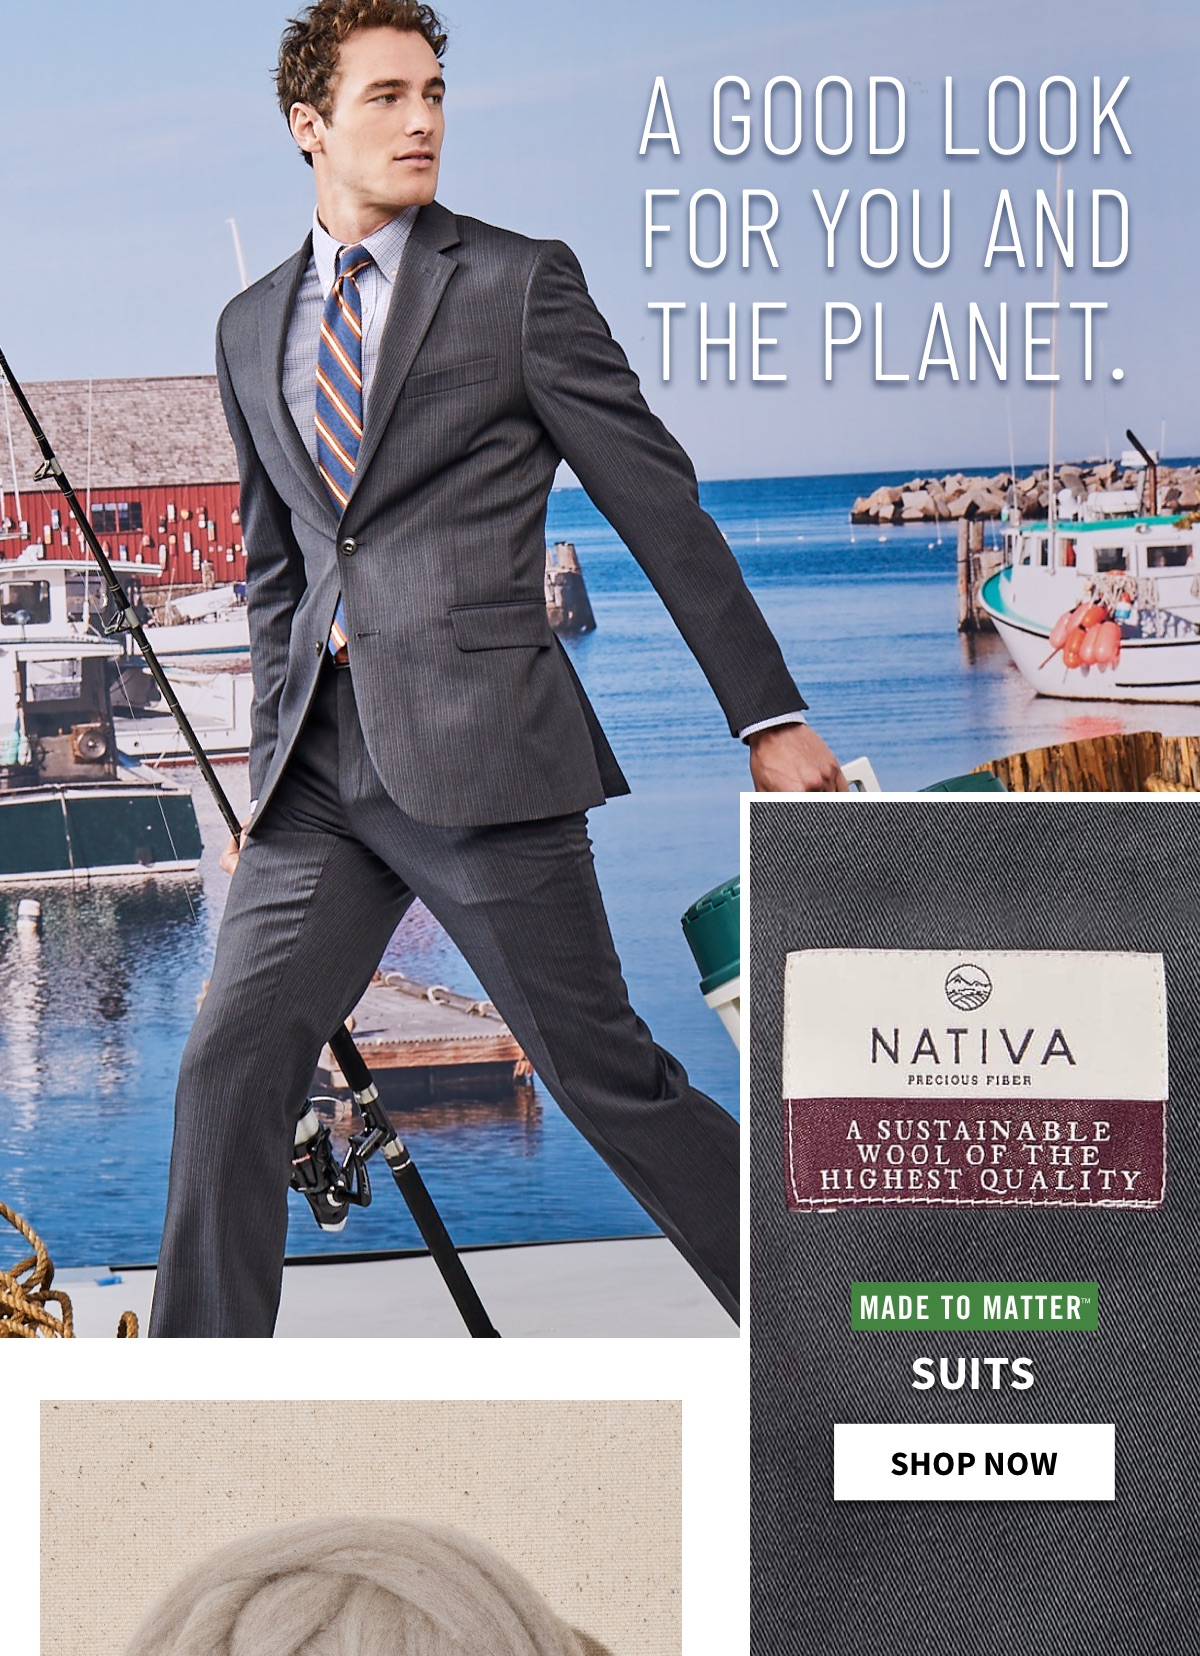 A GOOD LOOK FOR YOU AND THE PLANET|Made to Matter Suits -  Shop Now